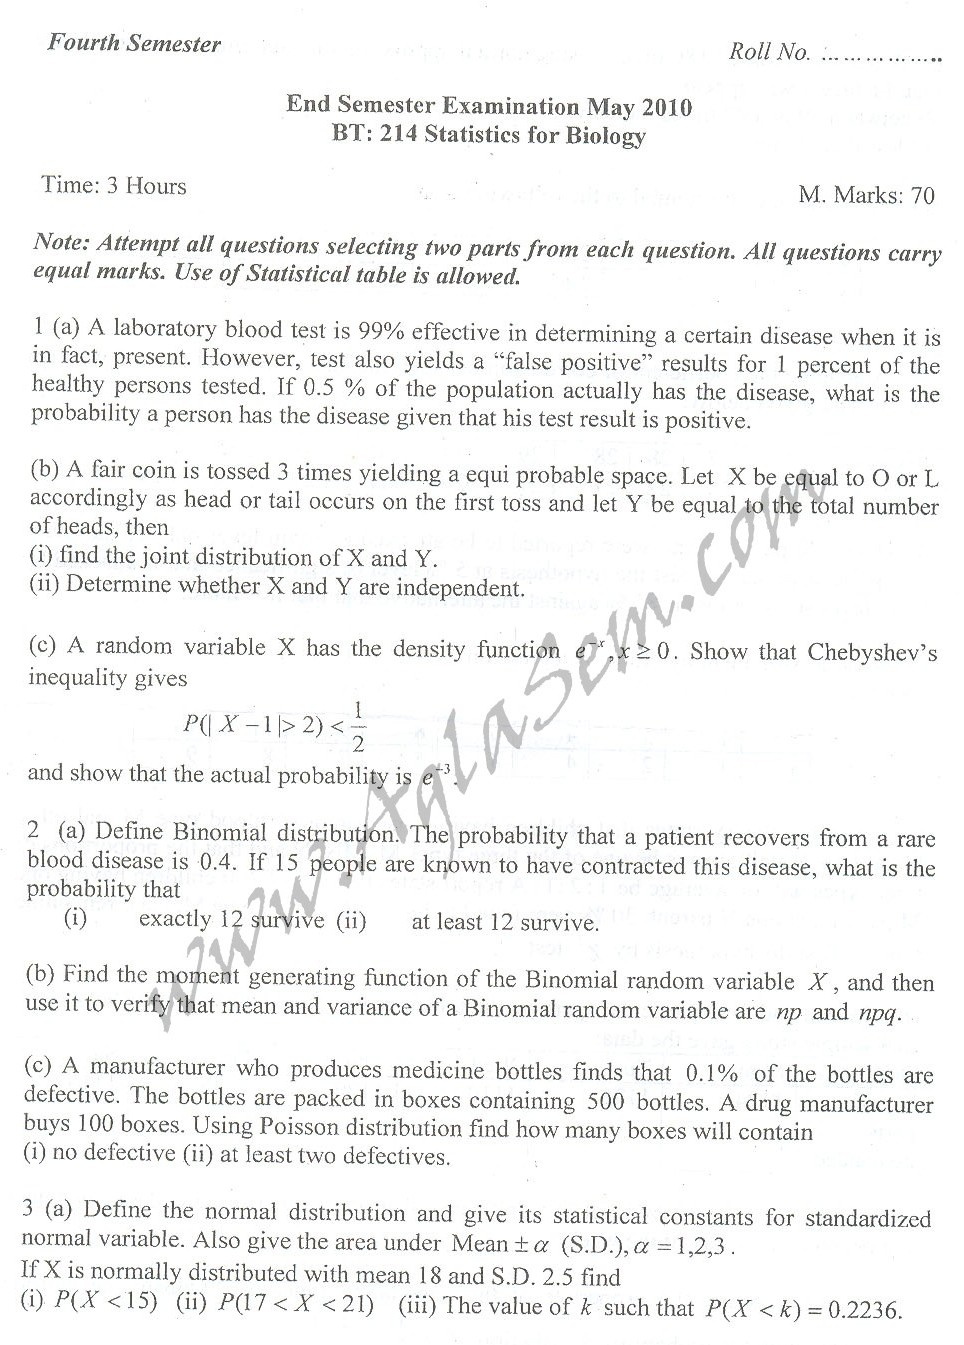 DTU Question Papers 2010 – 4 Semester - End Sem - BT-214